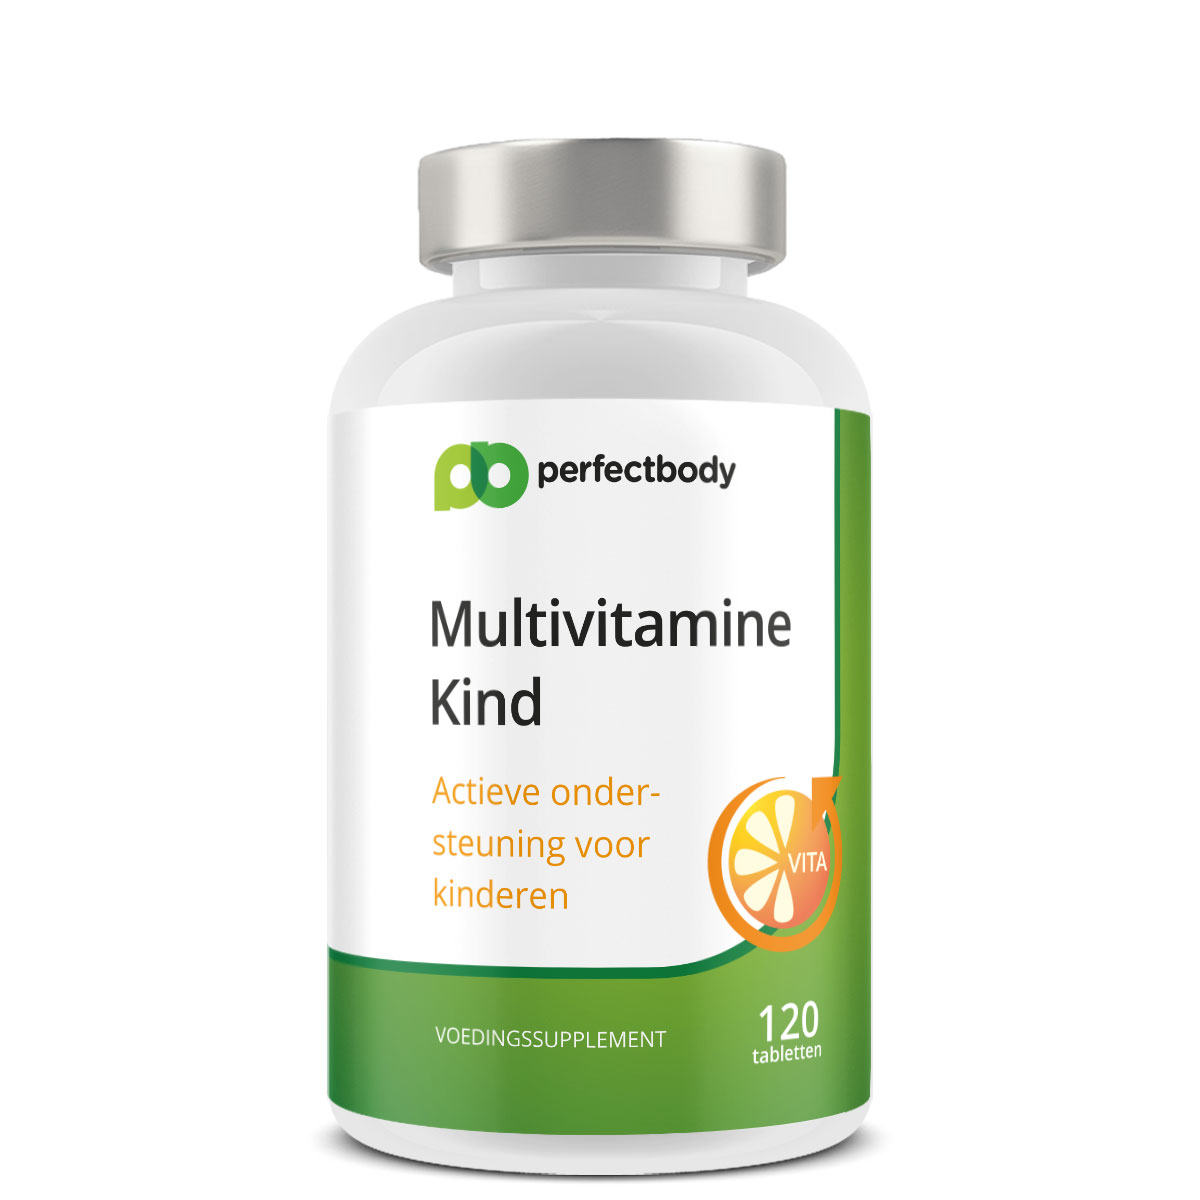 Perfectbody Multivitamine Kind - 120 Tabletten